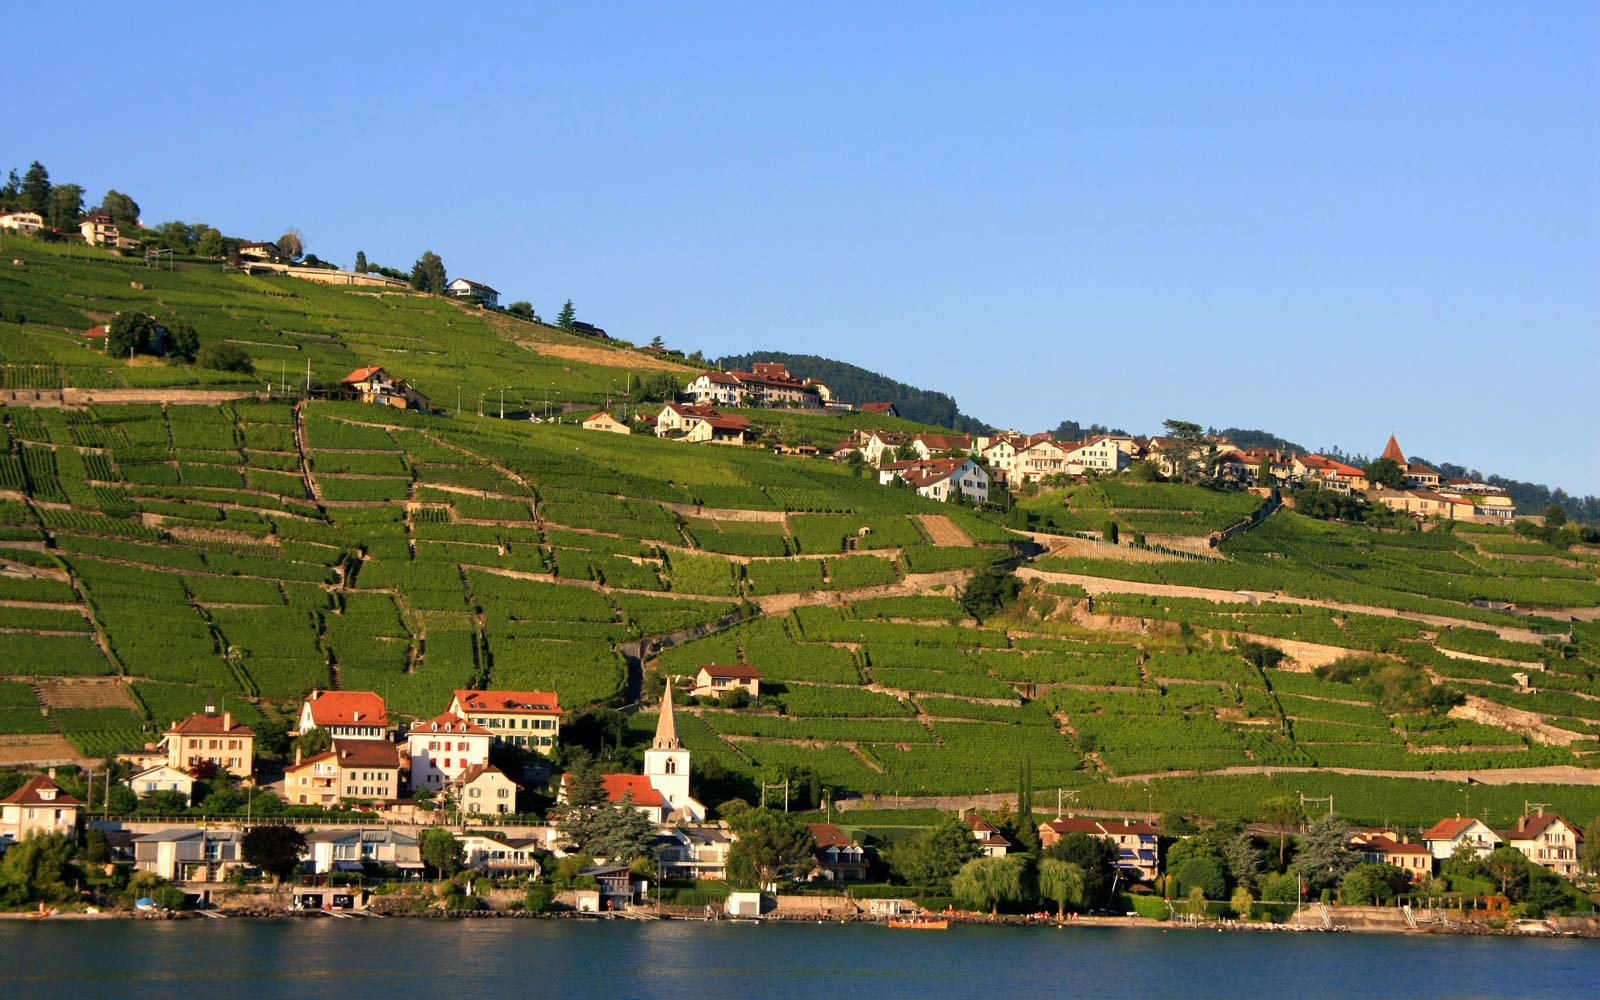 Hunt for Truffles in the Alps on This Six-day Tour of Switzerland